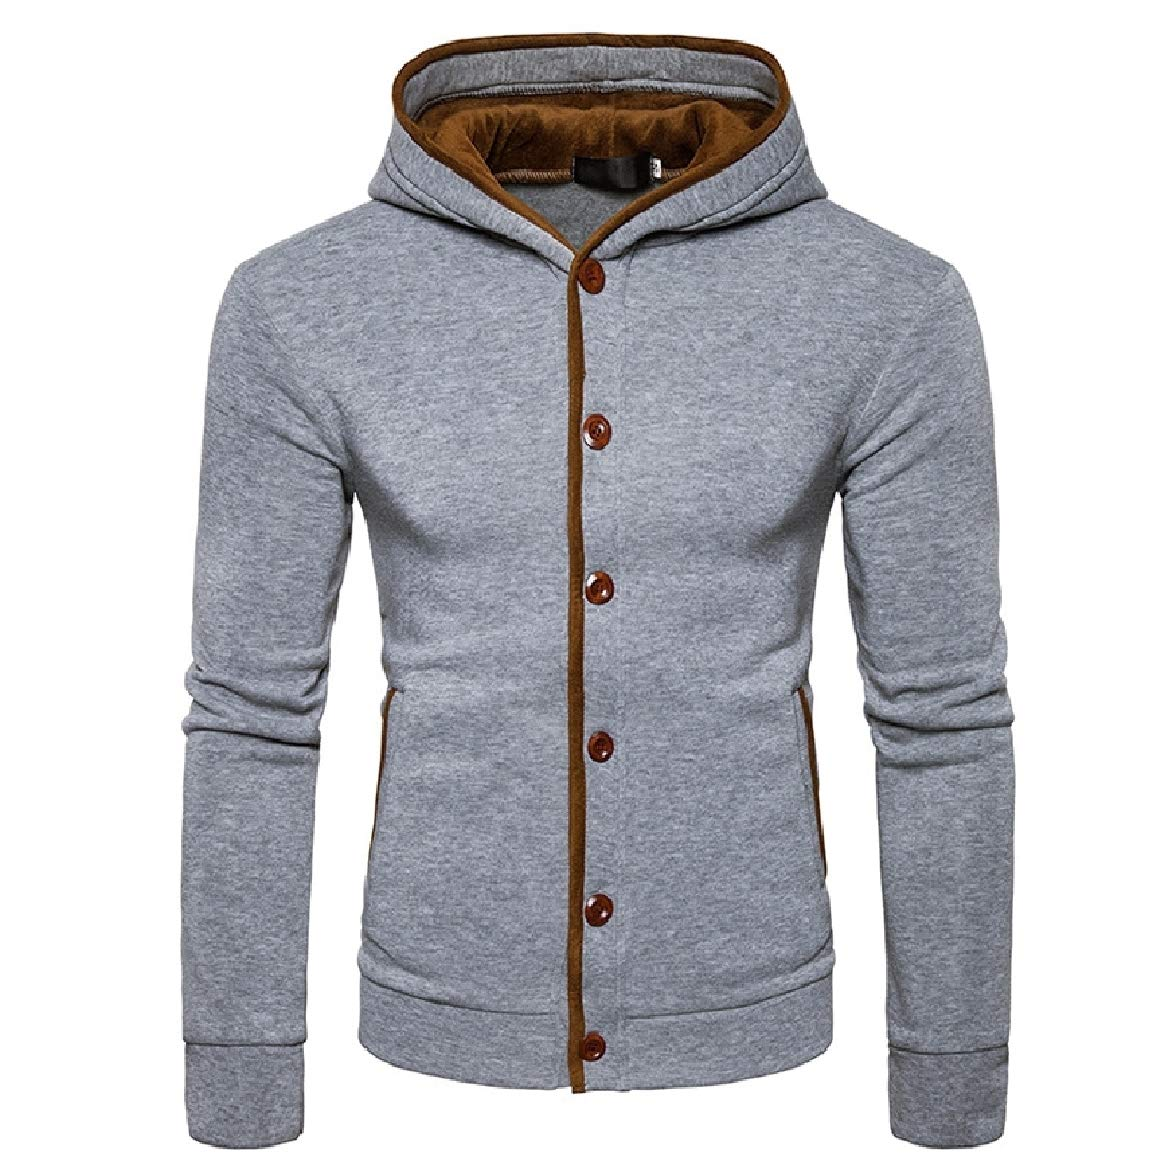 Abetteric Mens Cardi Plus Size Winter Hooded Pullover Sweatshirt Top